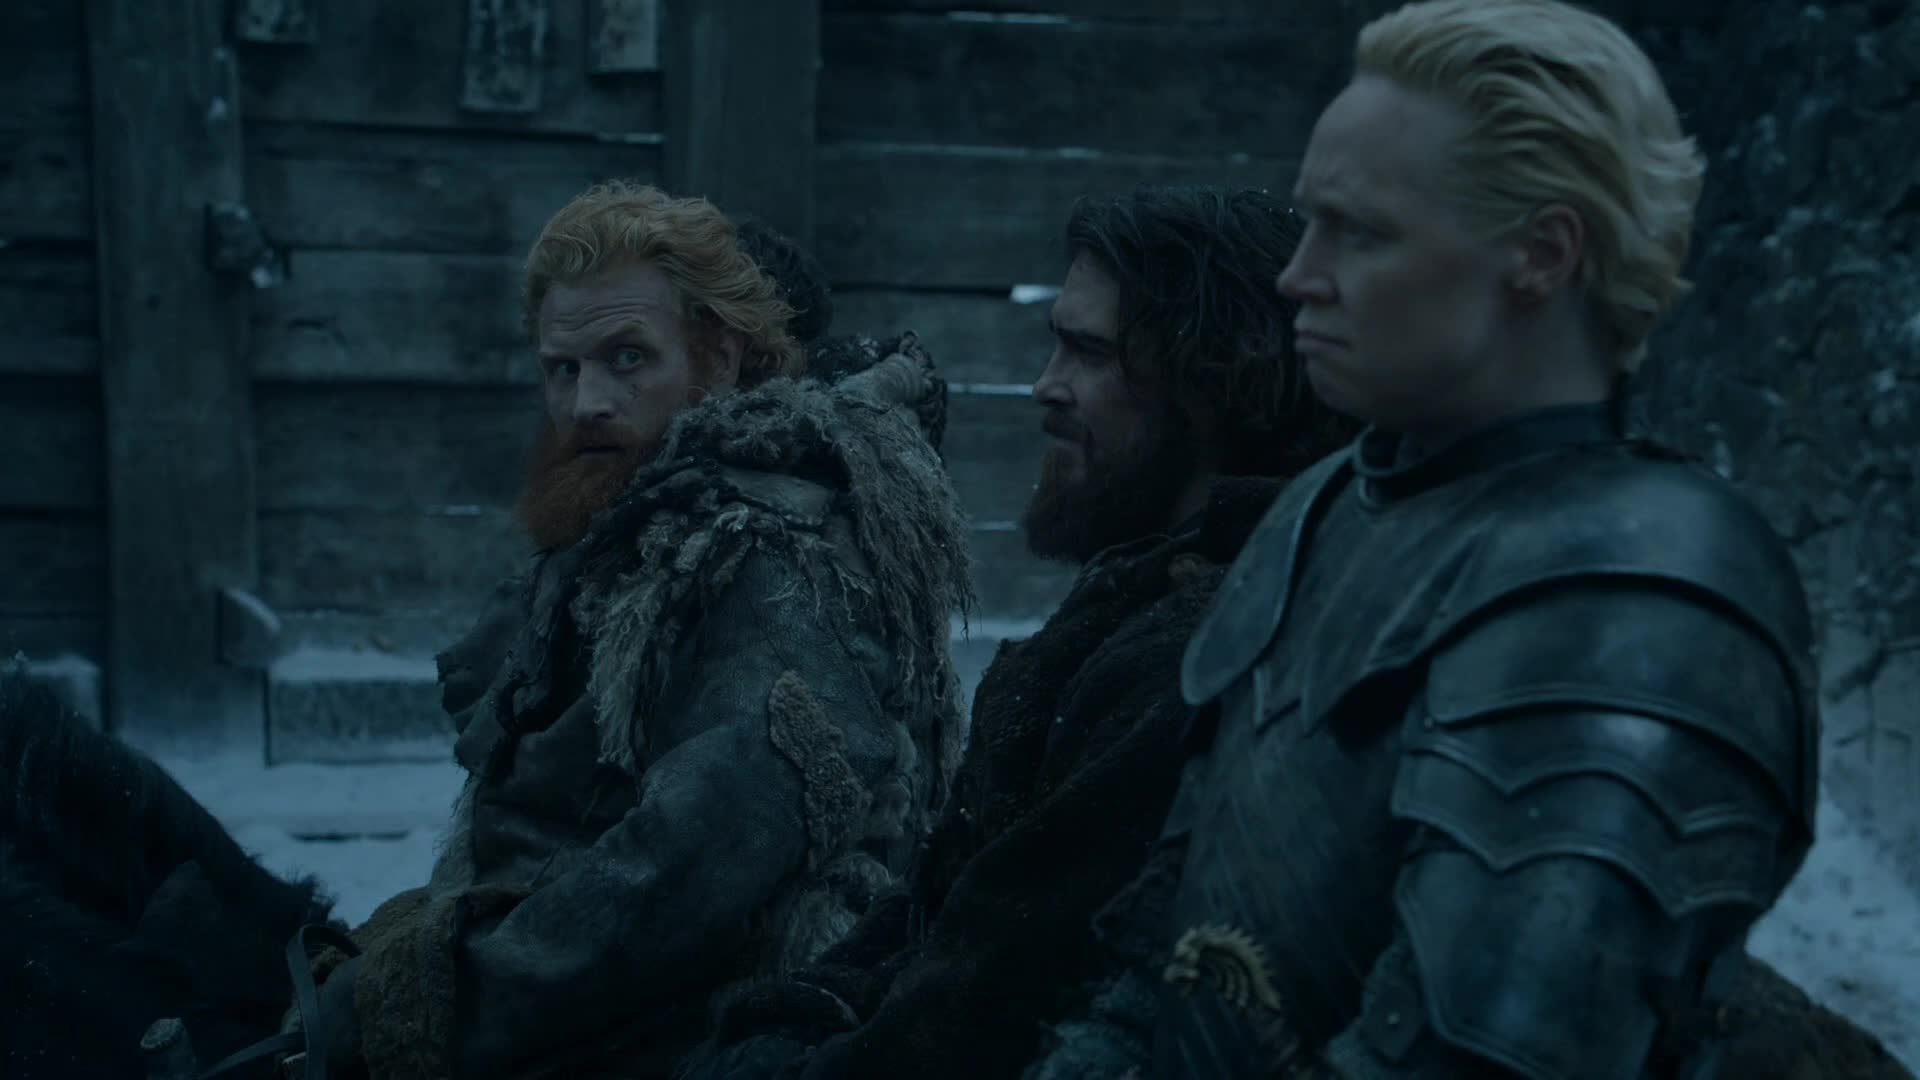 Brienne, Christie, Door, Game, Gwendoline, S06E05, Tarth, Thrones, celebs, ew, gwendoline christie, kristofer hivju, of, sigh, ugh, Brienne of Tarth ugh GIFs